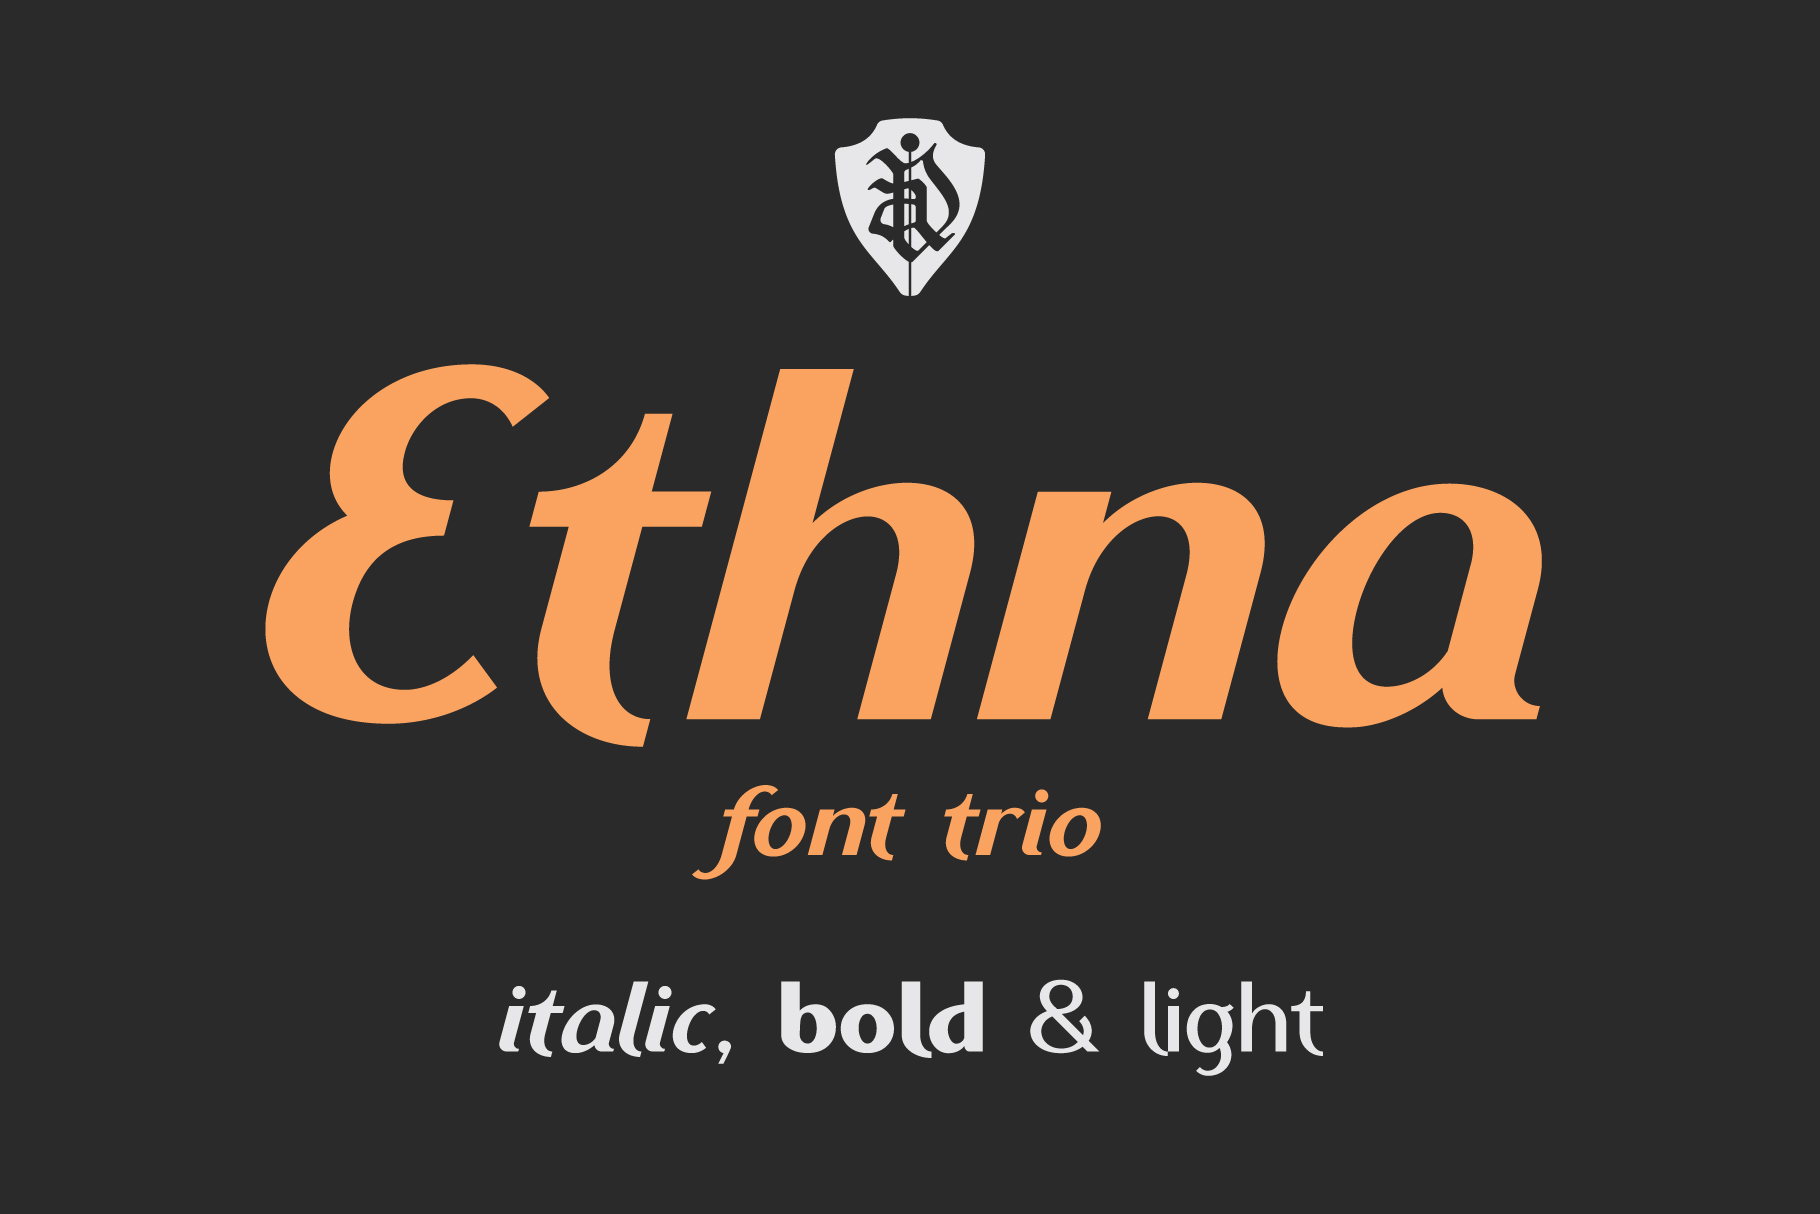 Ethna font trio example image 1